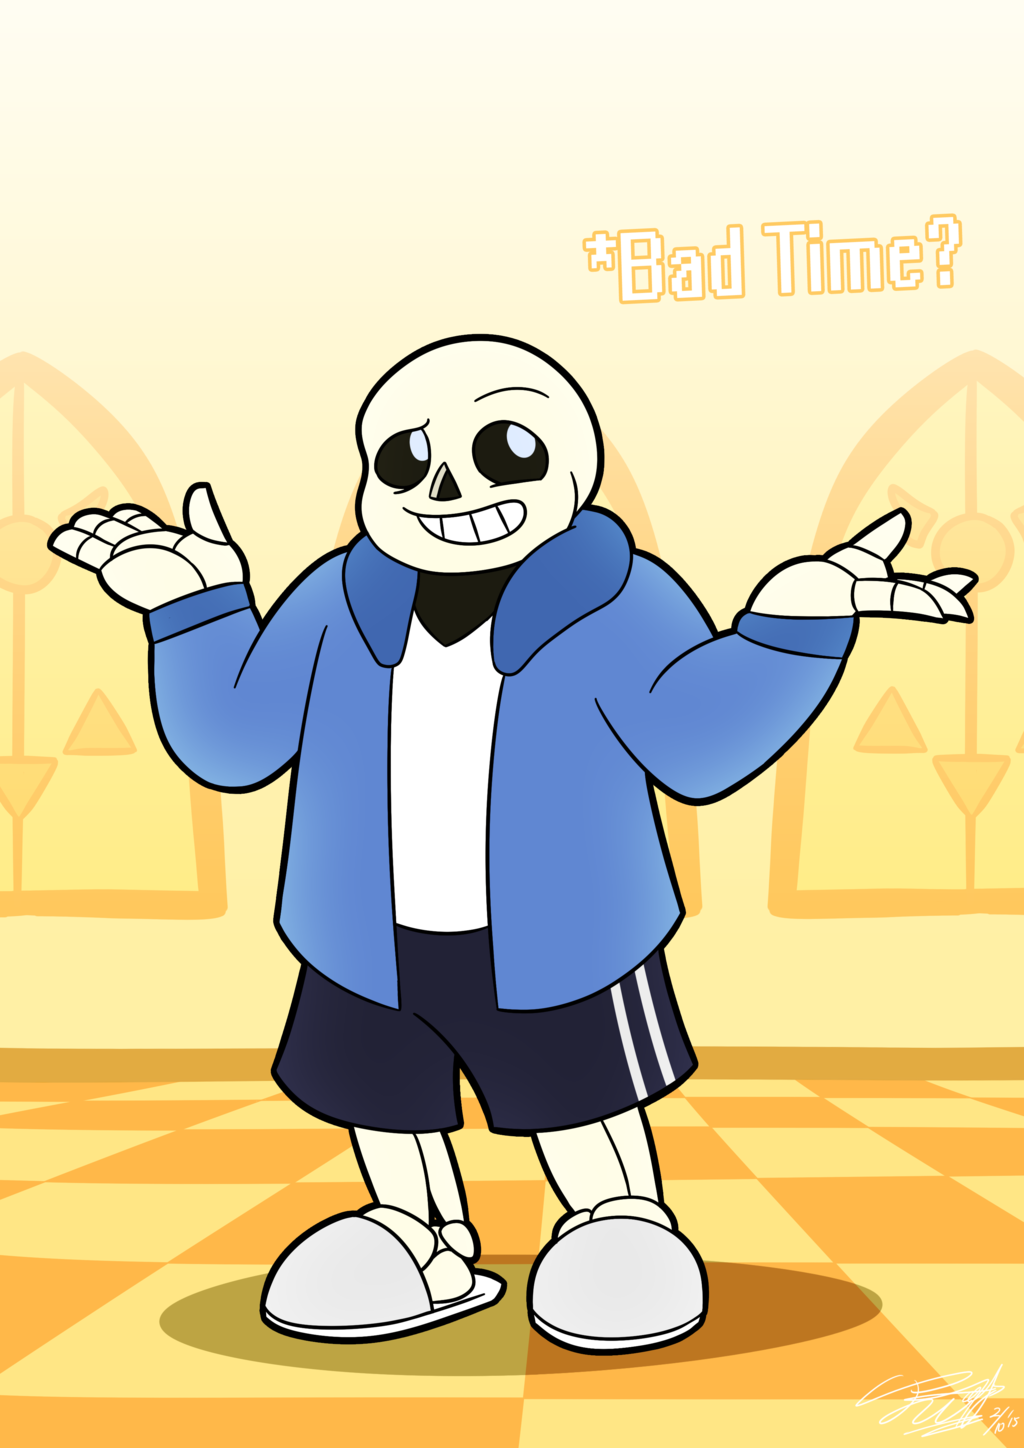 Bad Time?